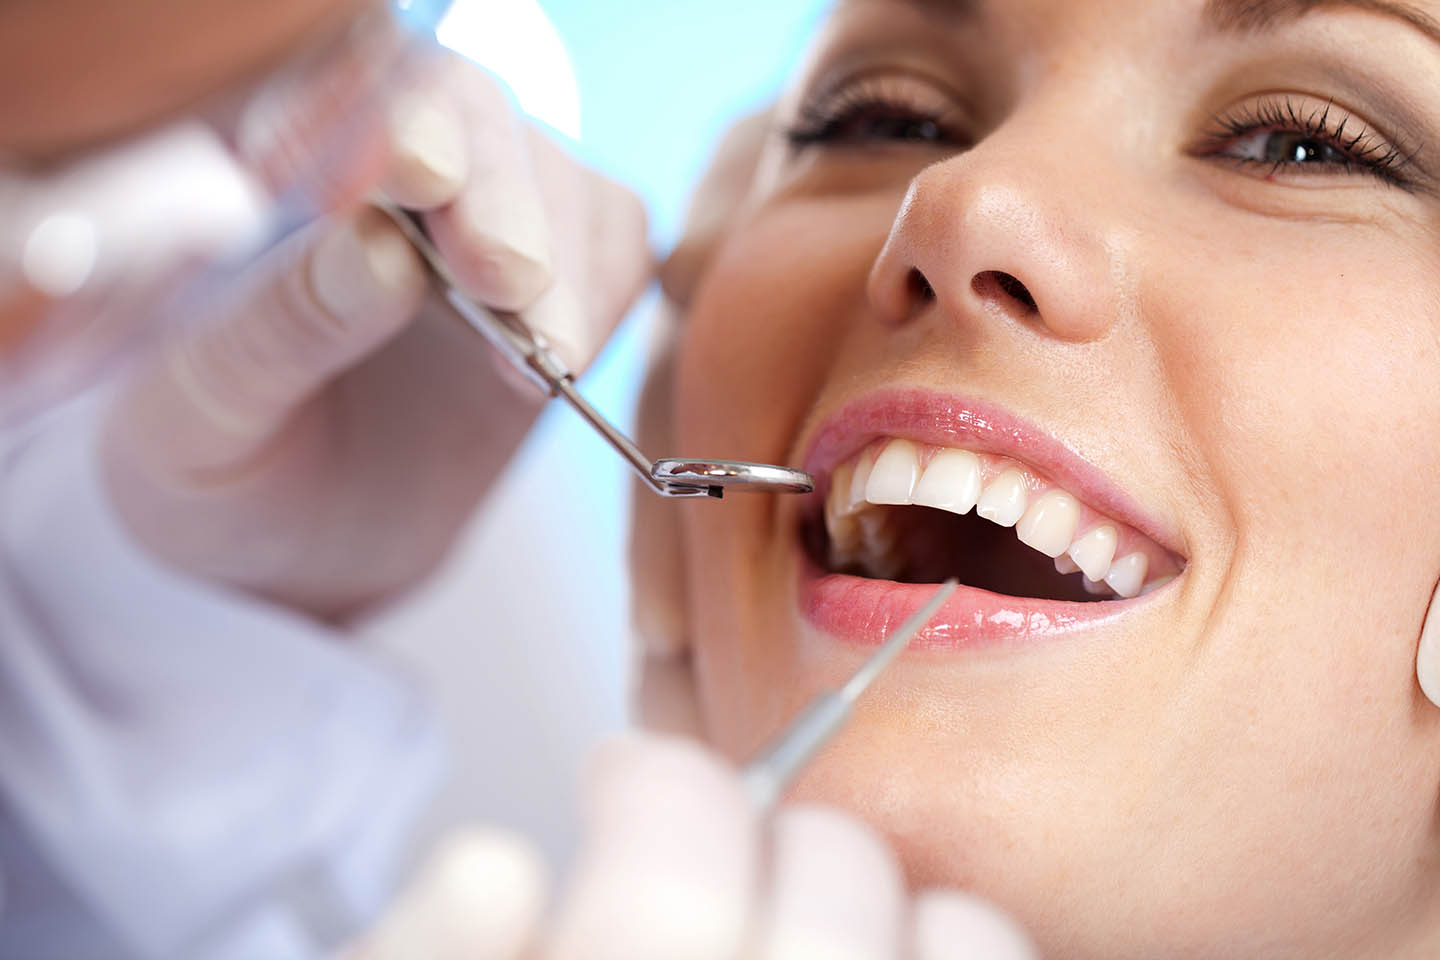 Closeup of restorative dentistry work on a patient